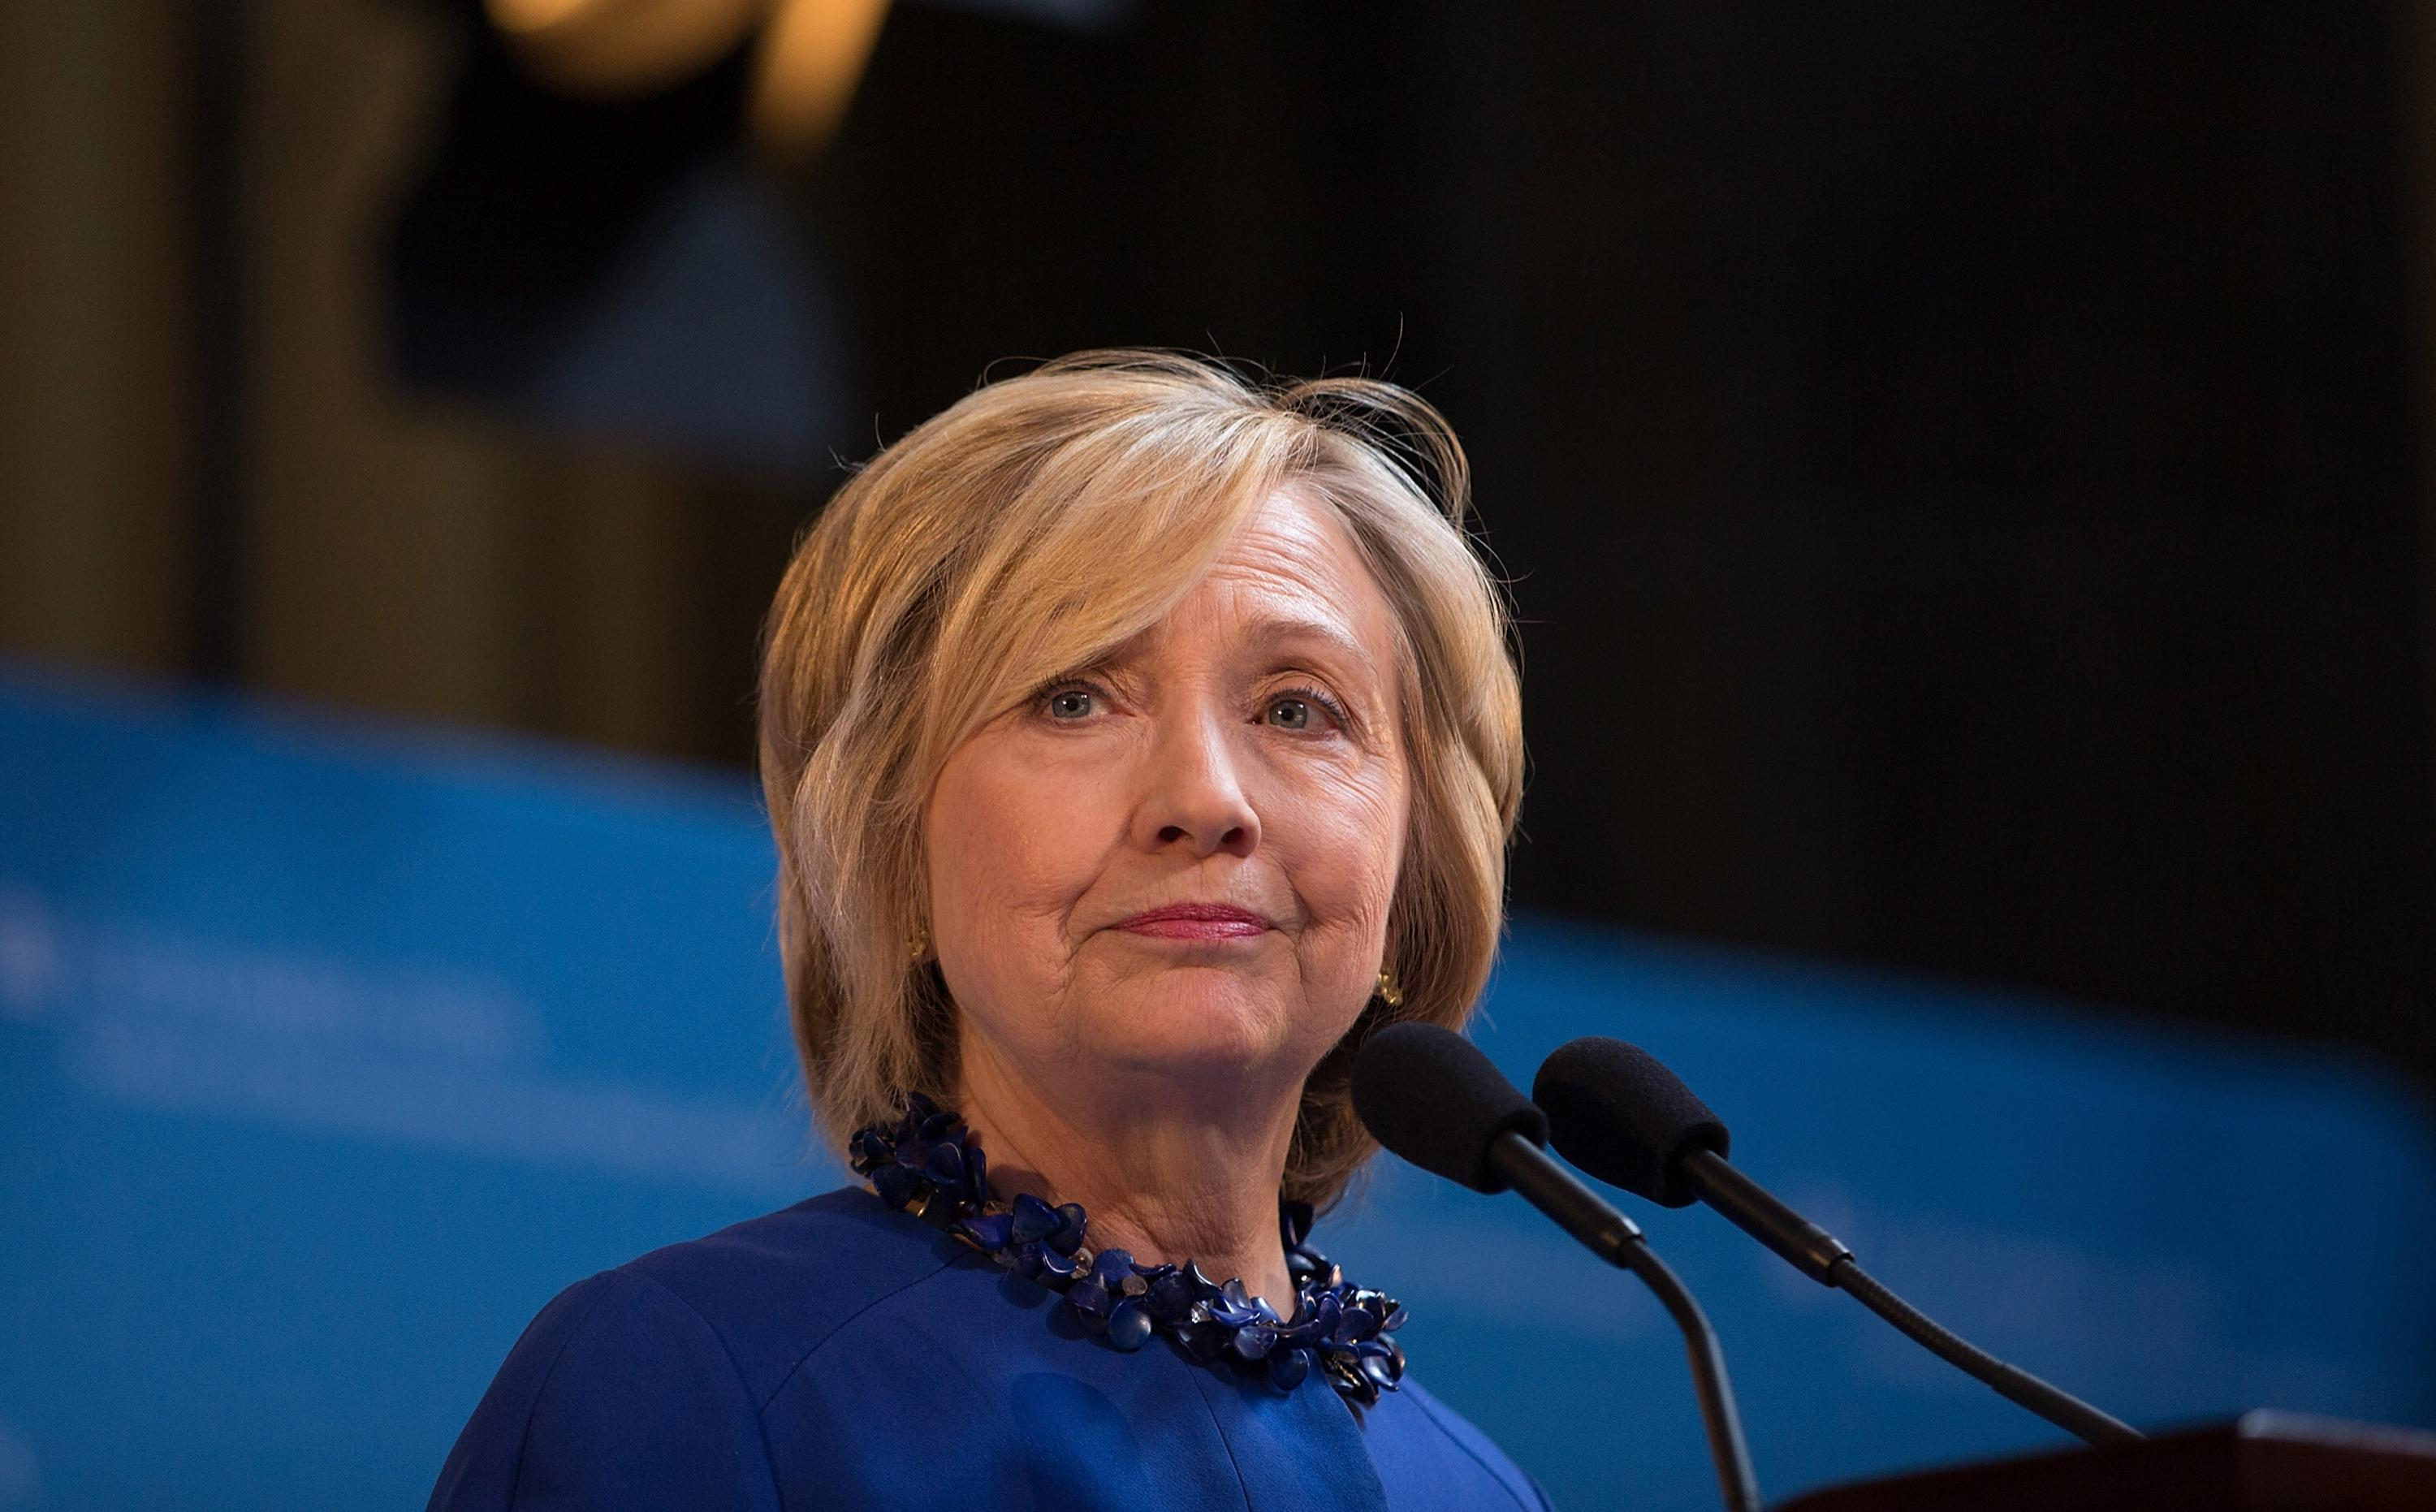 How Hillary Clinton might solve the student debt crisis